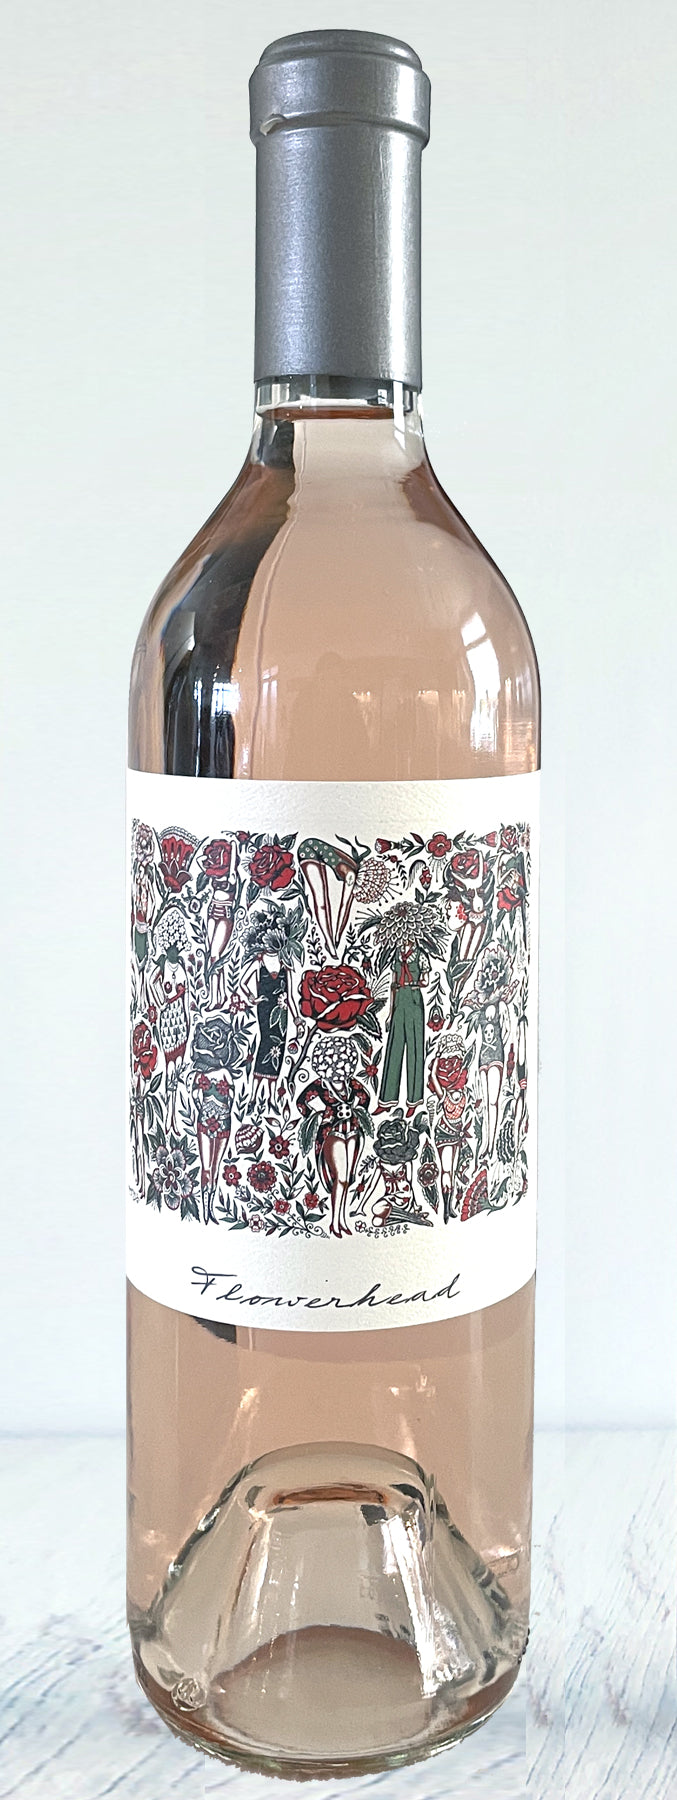 2020 Lu and Oly Flowerhead Rosé